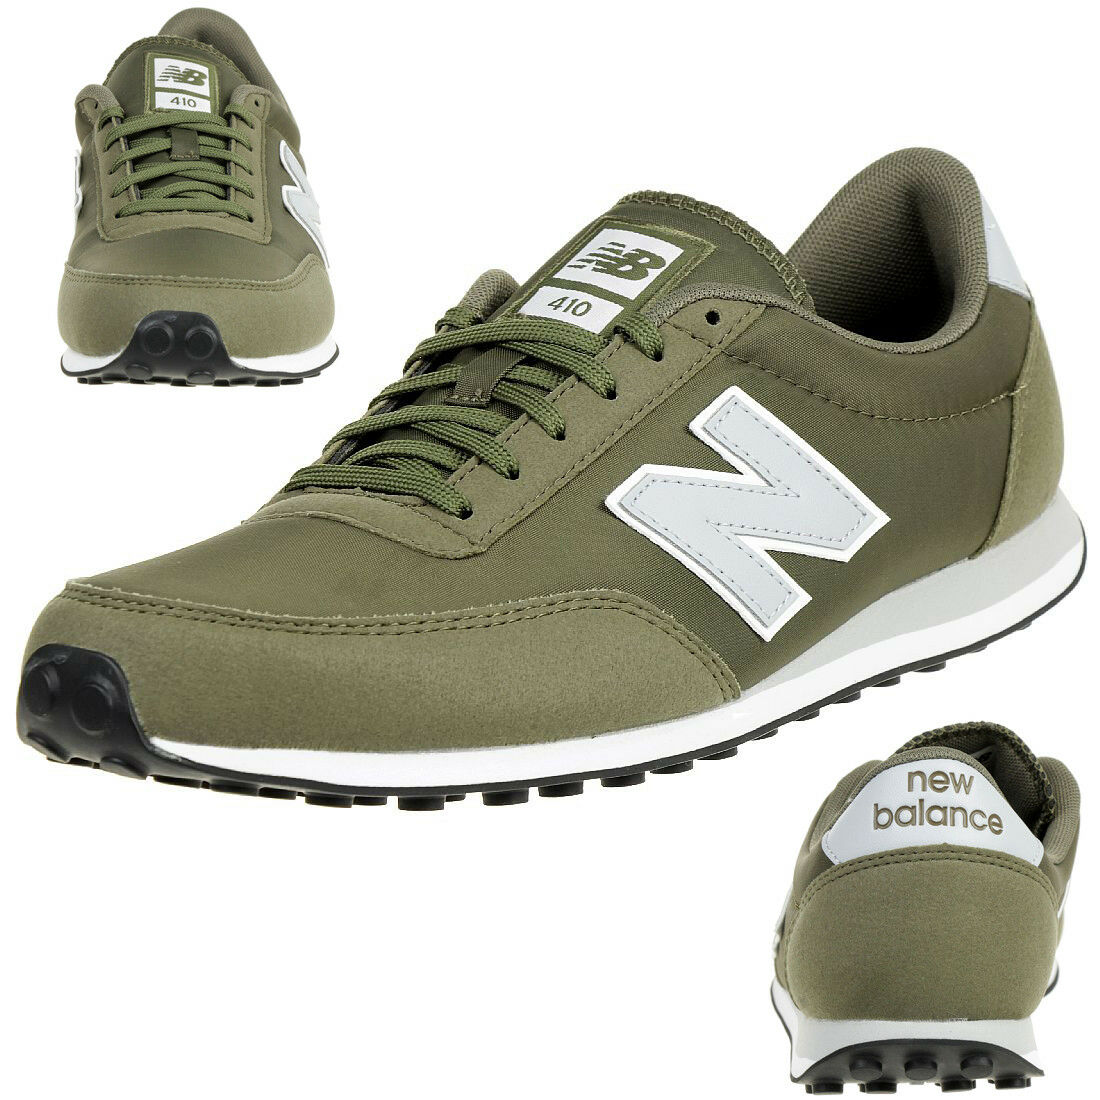 New Balance U410 Olg Sneakers Unisex shoes Sneakers Olive